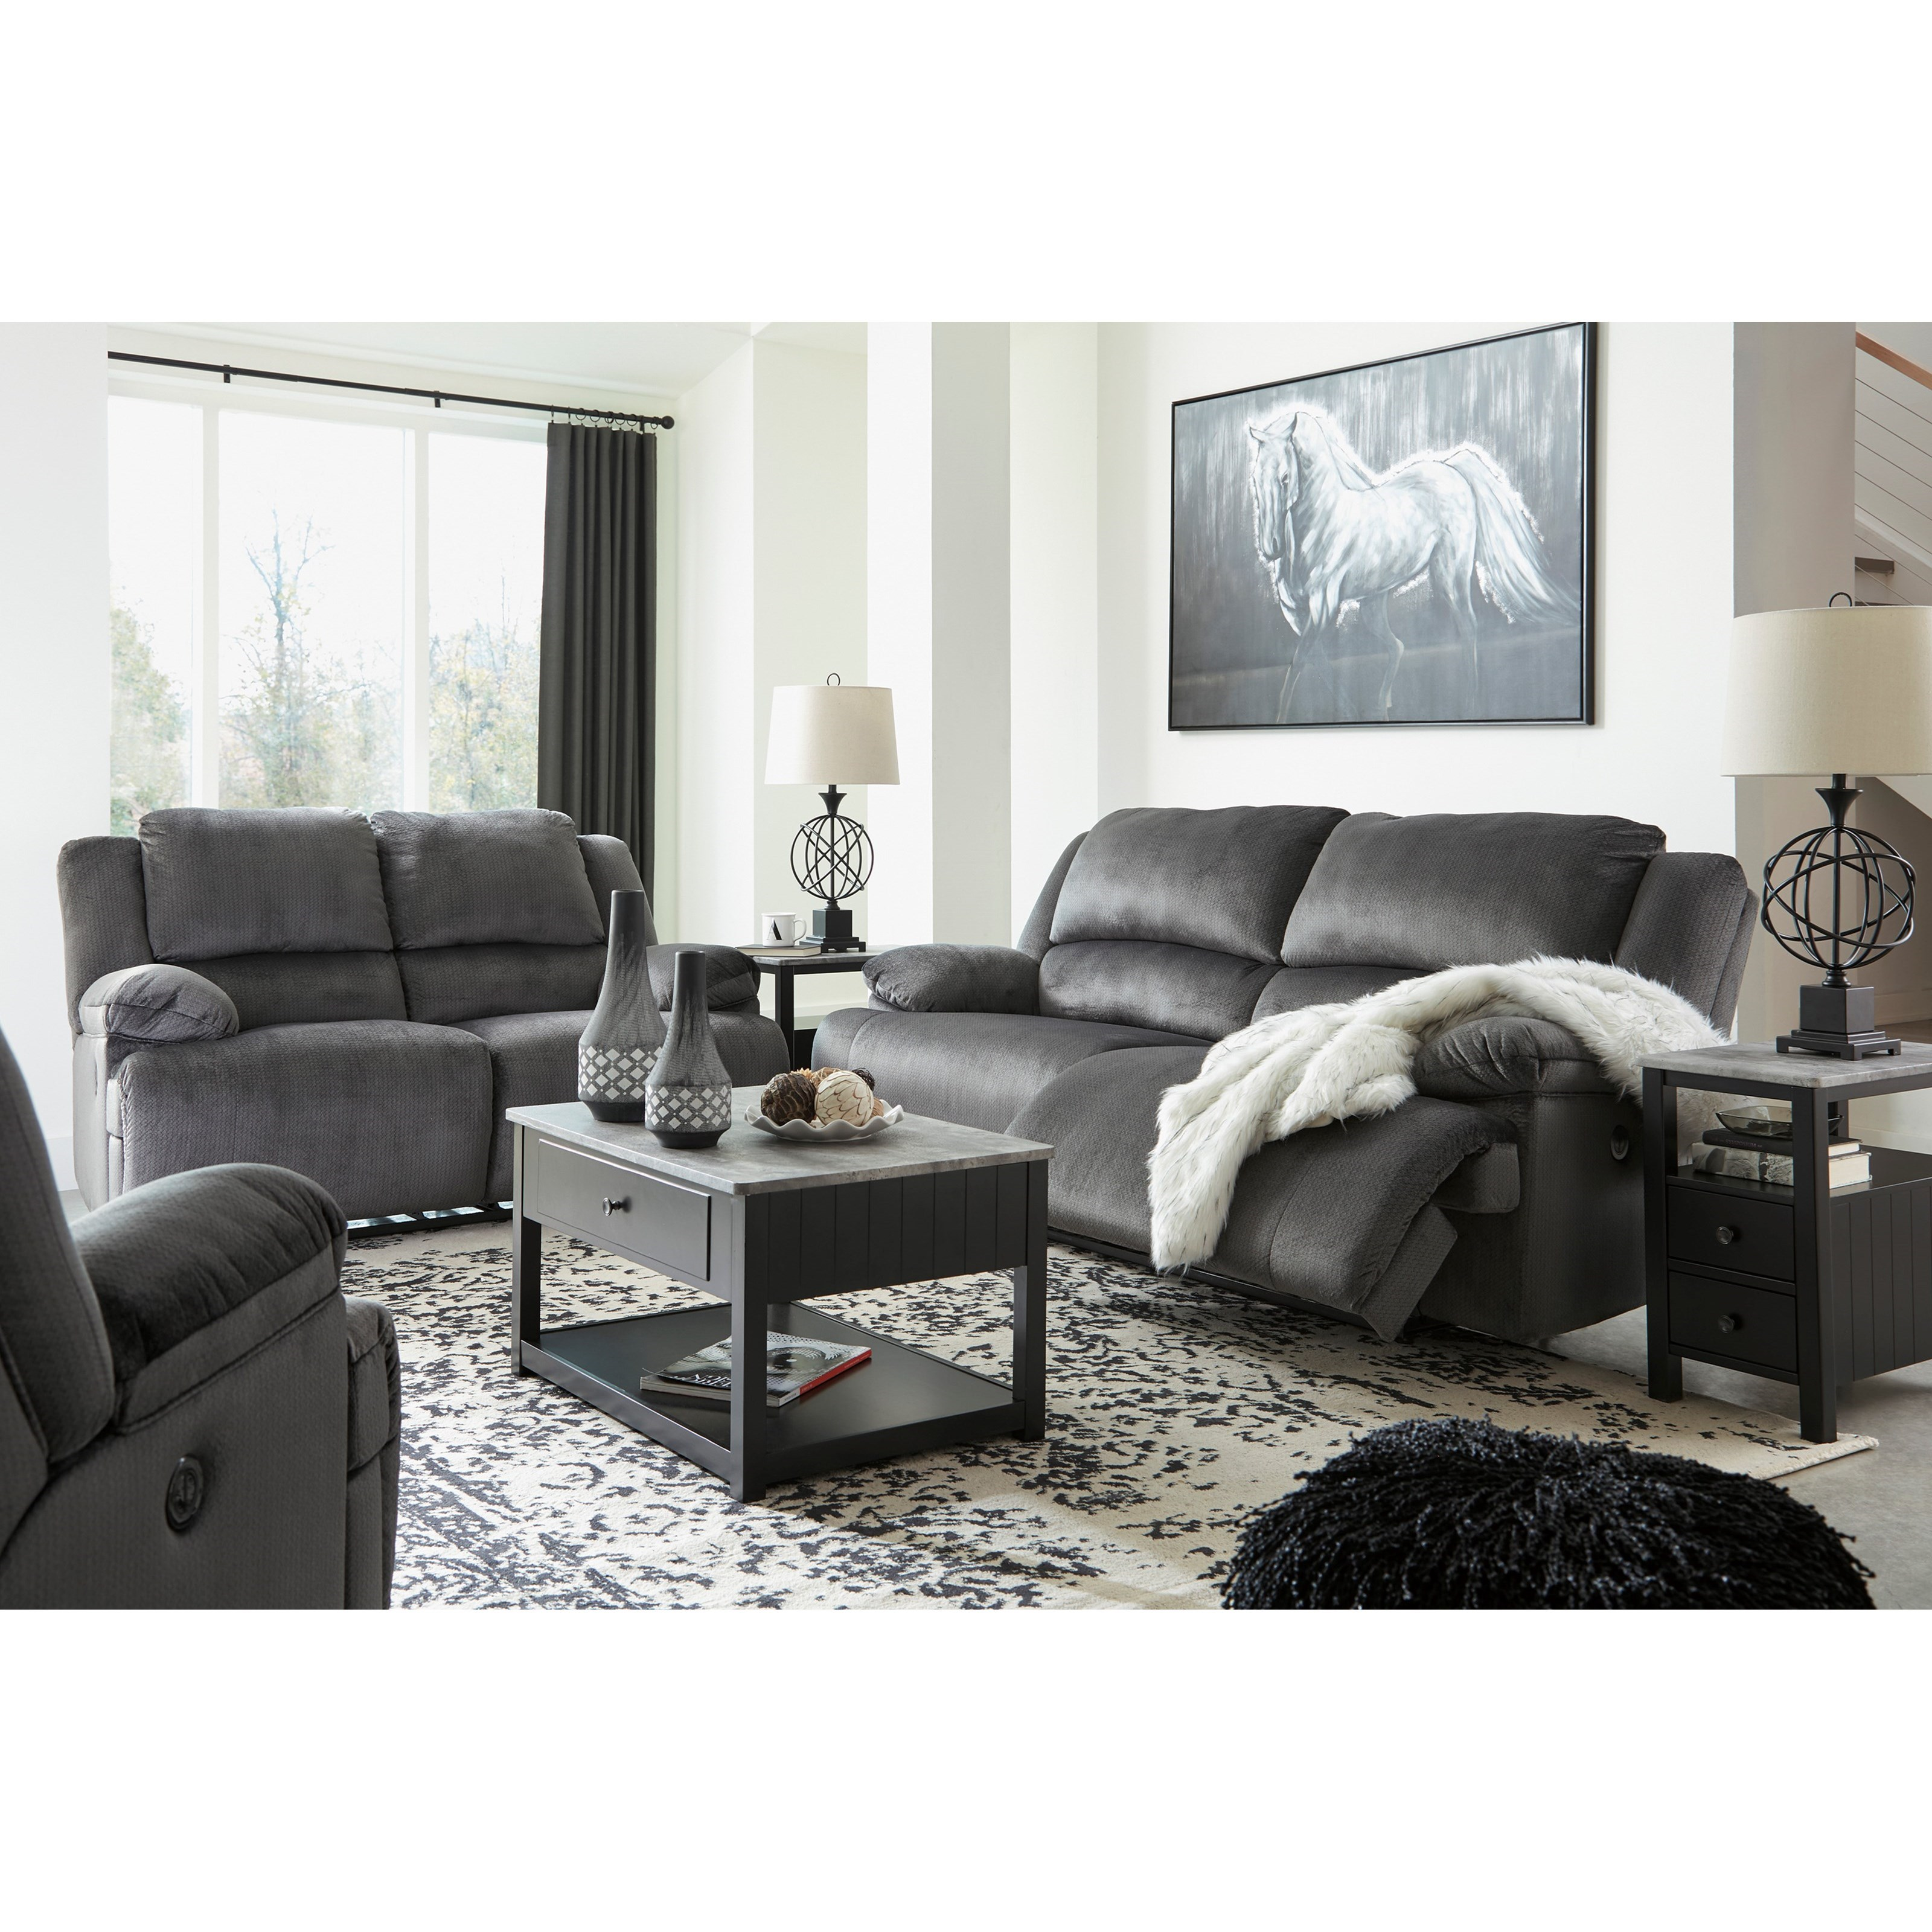 Clonmel Reclining Living Room Group by Signature Design by Ashley at Northeast Factory Direct